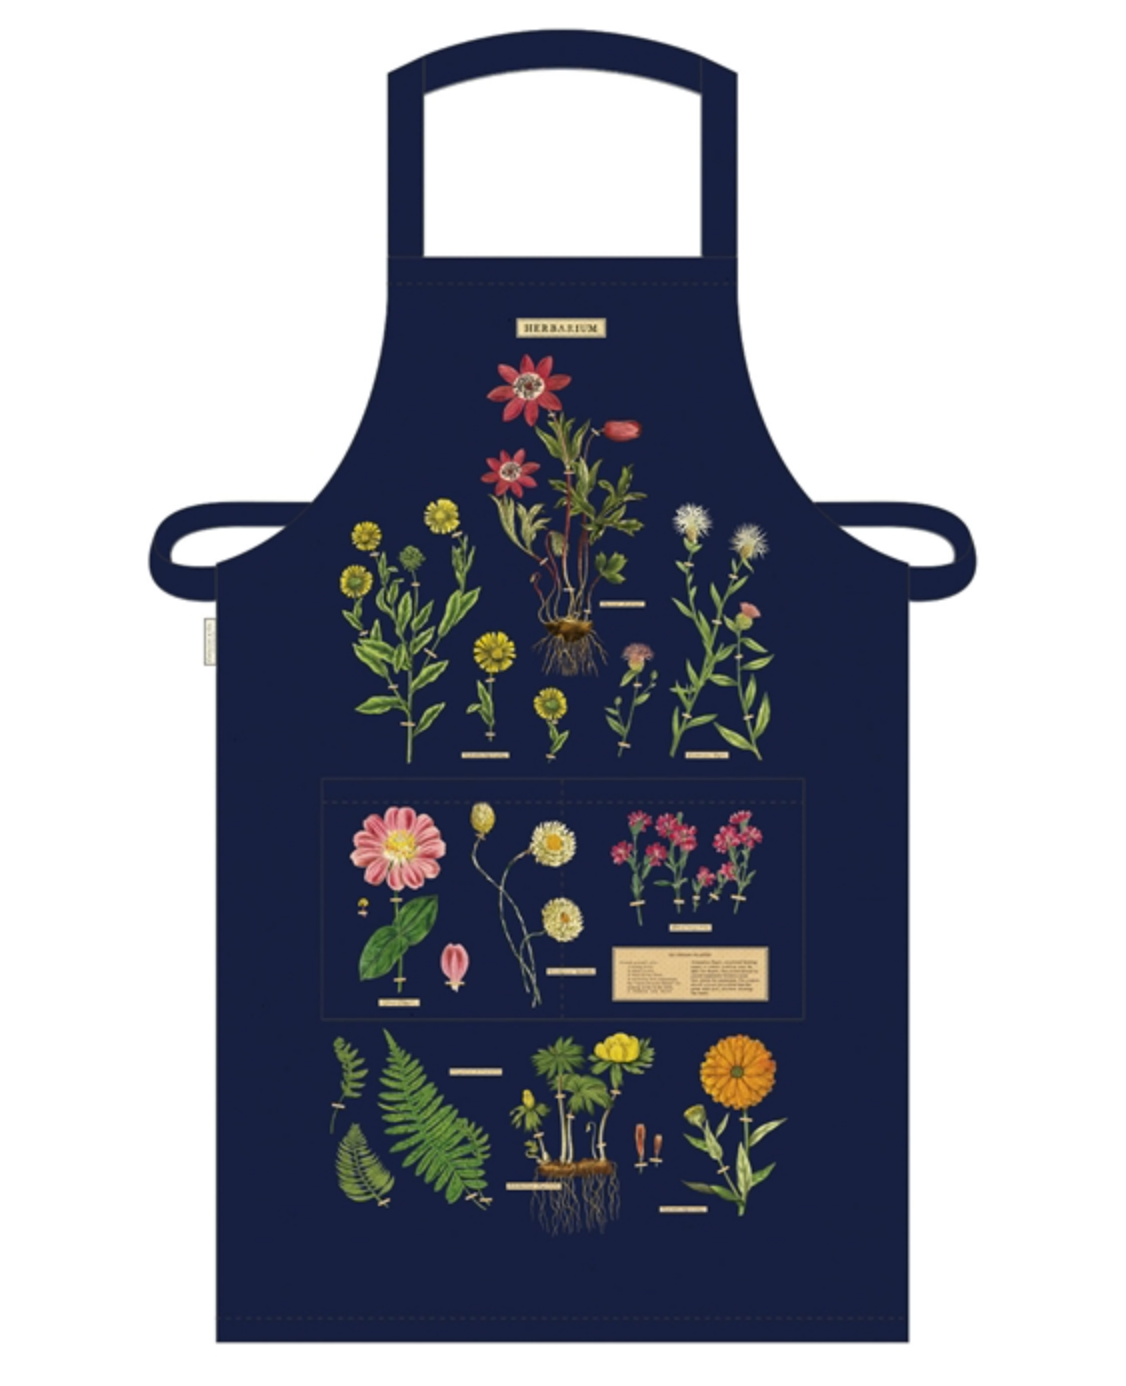 Apron in a Drawstring Bag